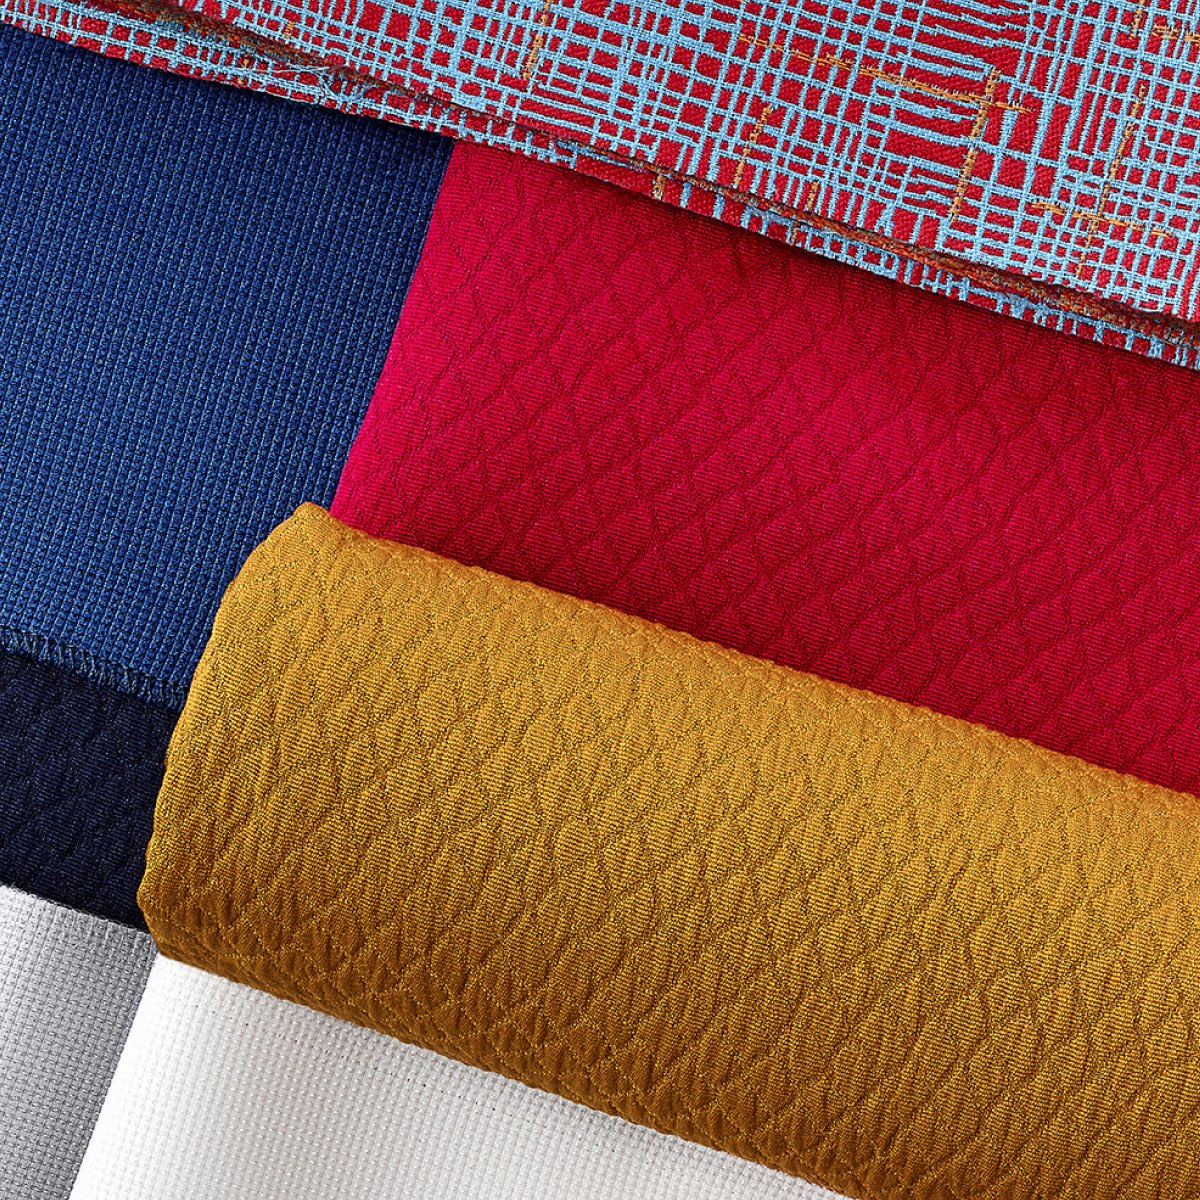 An overhead view of a variety of material samples in a range of colors.